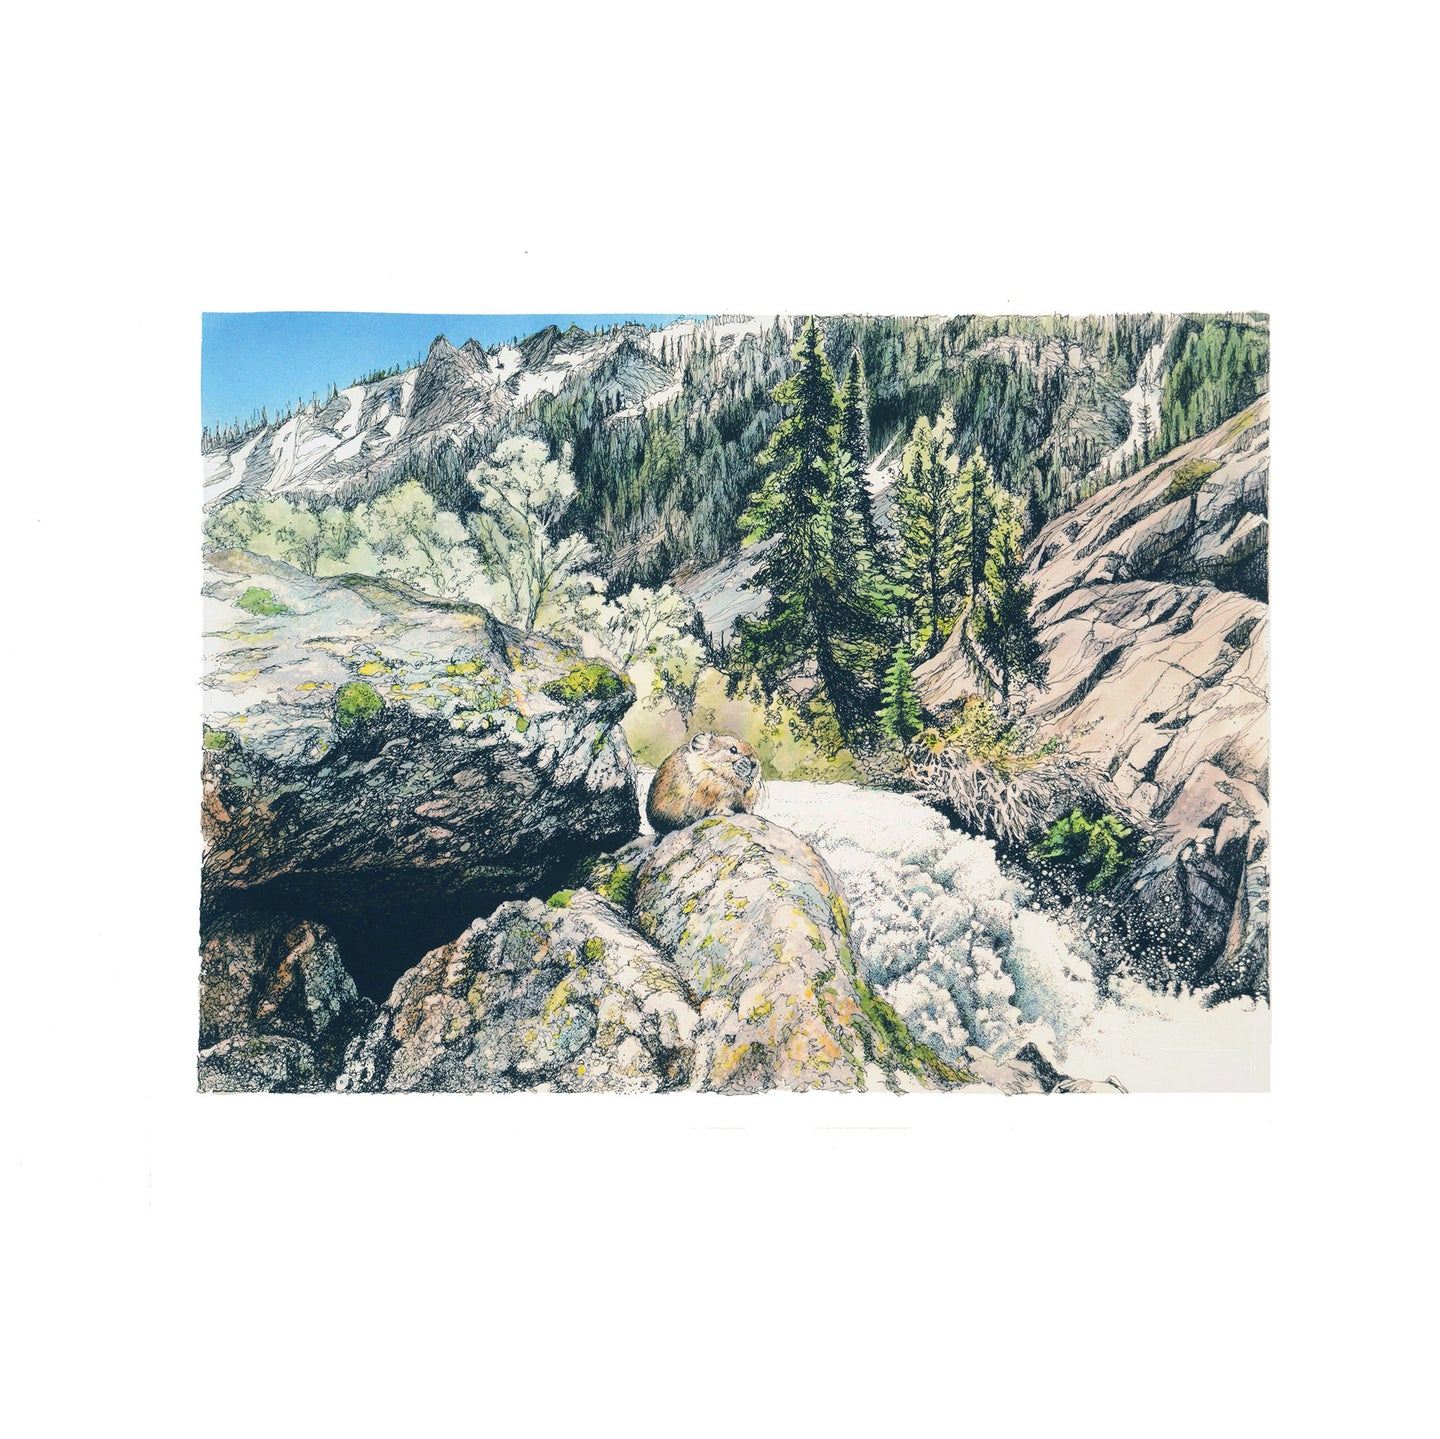 Pika on rock giclee, Grand Teton National Park, Wyoming